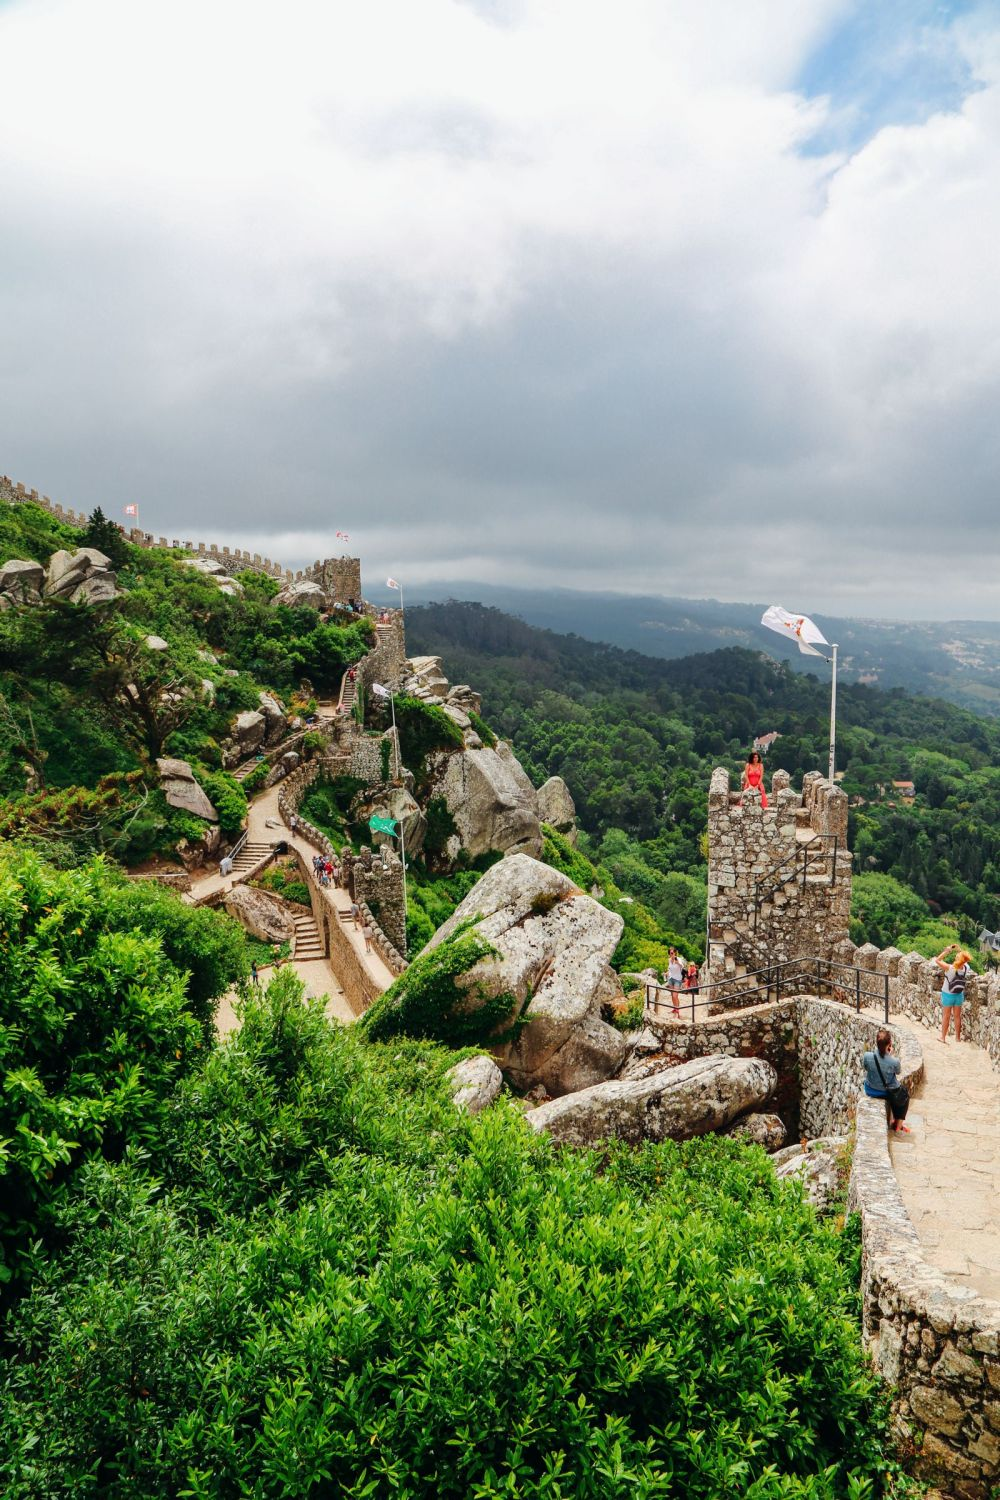 The Moorish Castle, Palace of Sintra And Pena Park – 3 Beautiful Places To See In Sintra, Portugal (11)